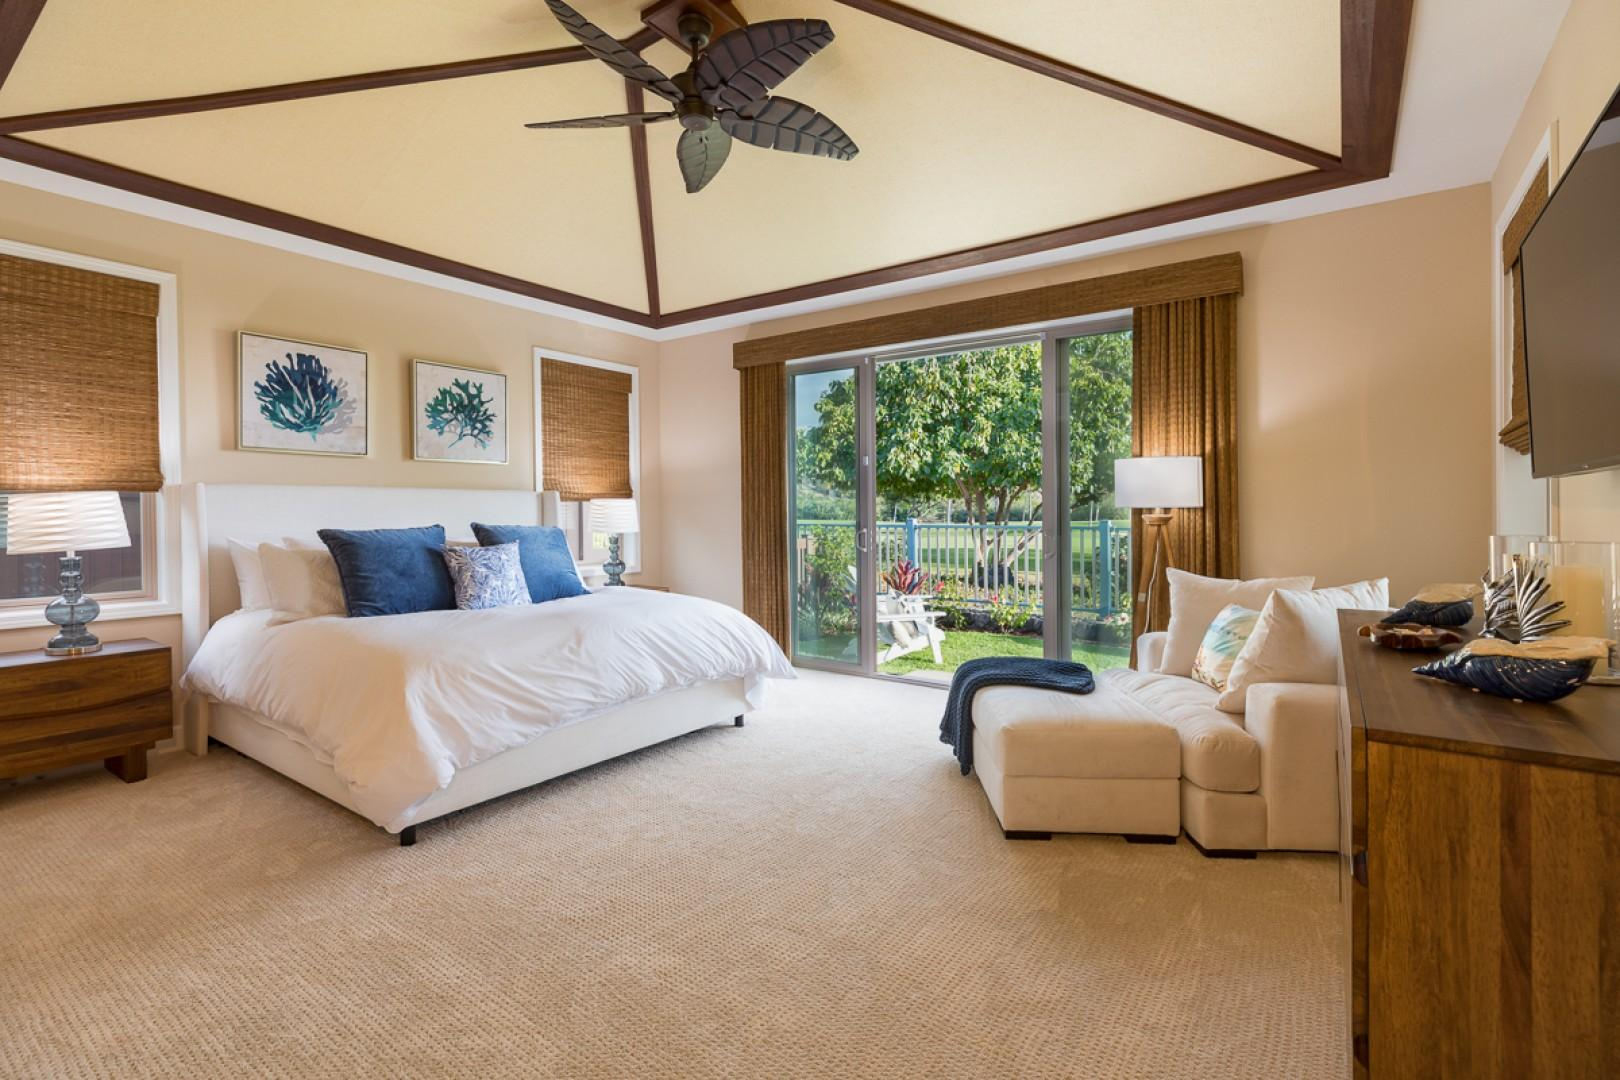 The sizable, welcoming master bedroom